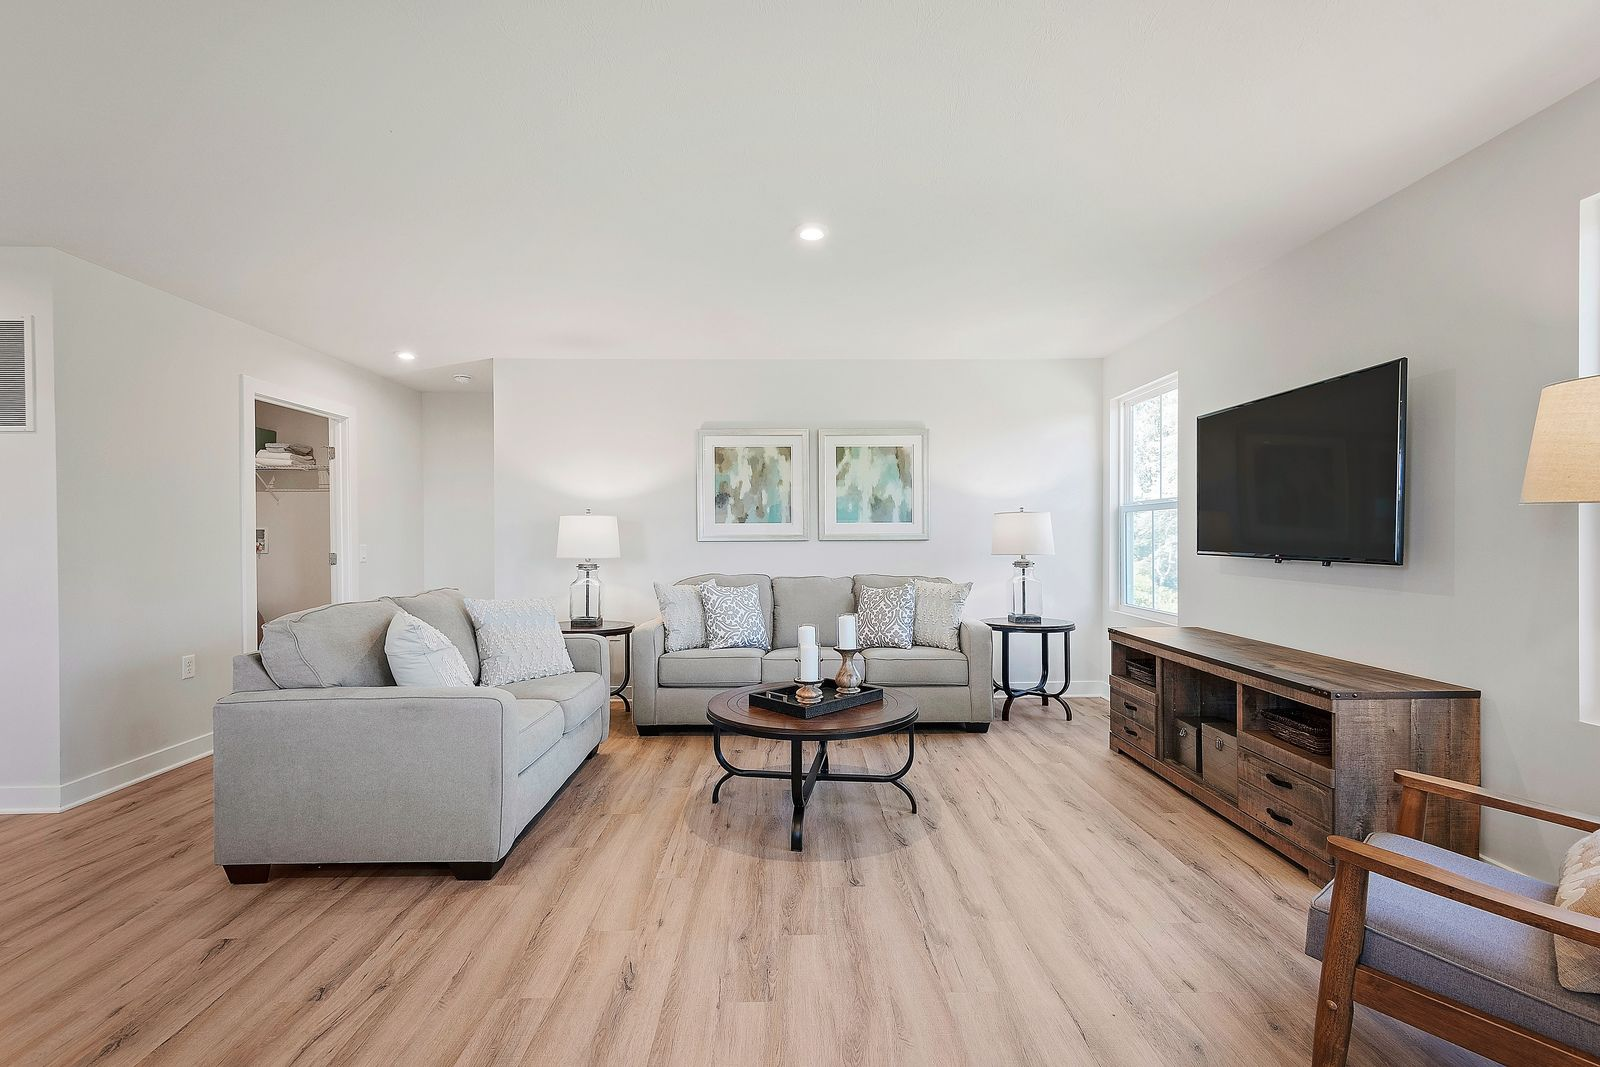 Living Area featured in the Dominica Spring By Ryan Homes in Sussex, DE